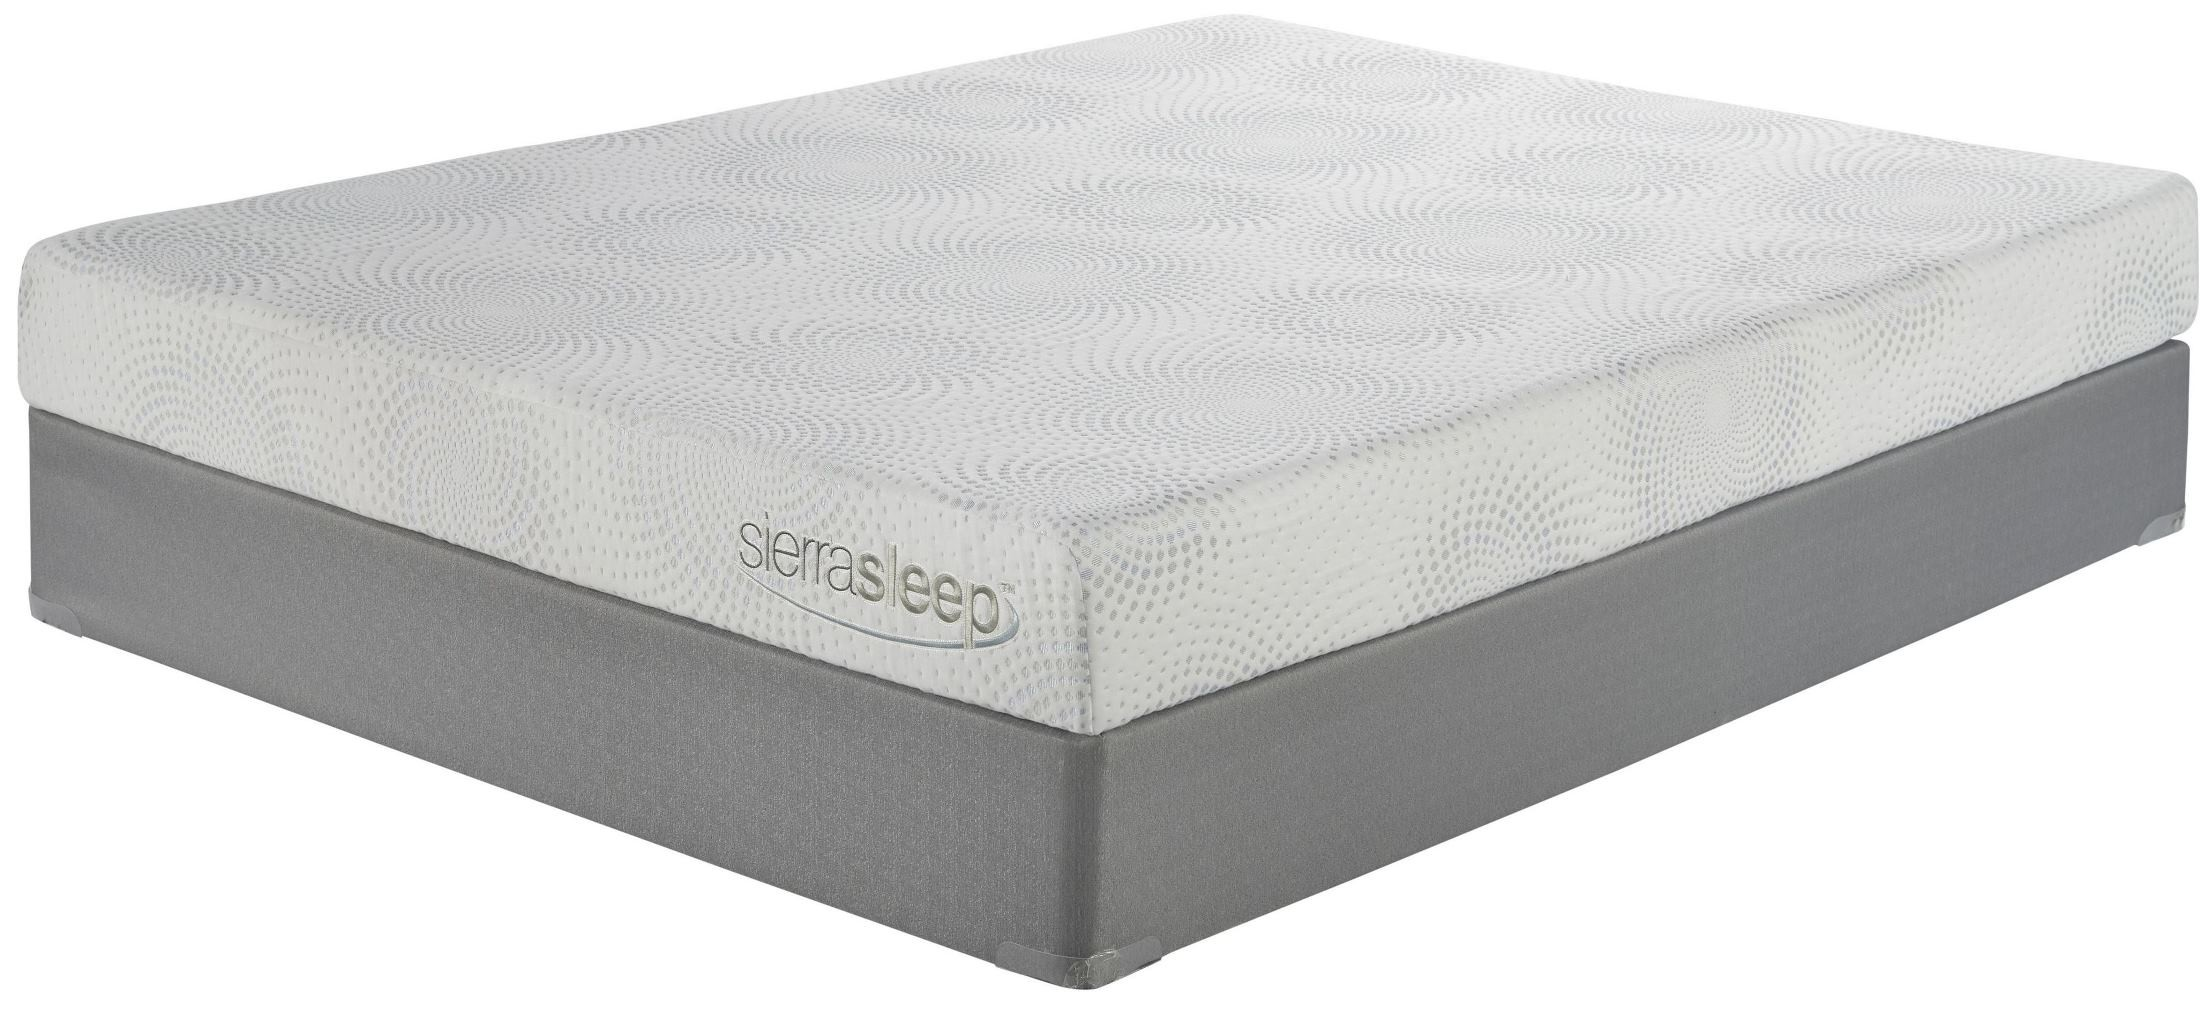 7 inch gel memory foam white cal king mattress from ashley m97151 coleman furniture Memory foam king mattress